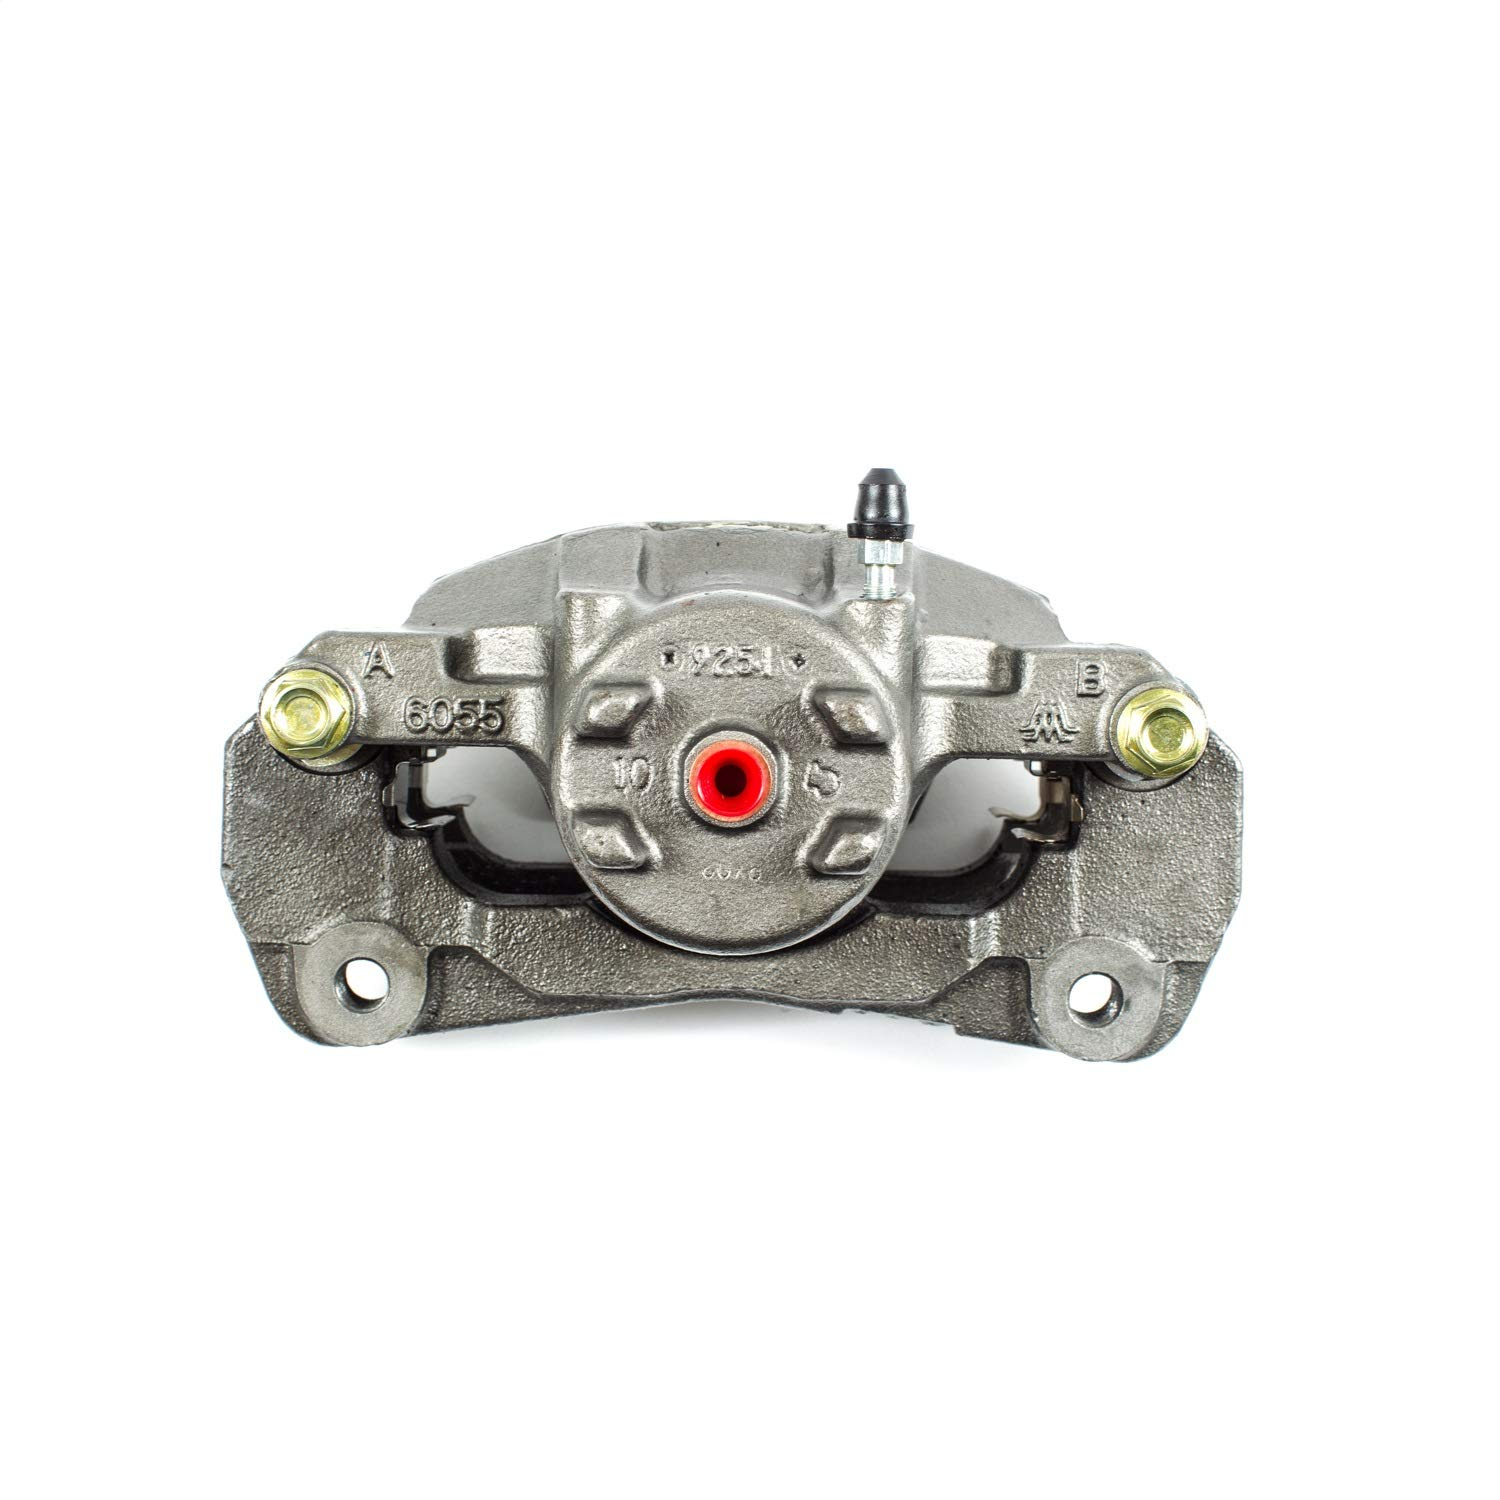 Power Stop L2615 Autospecialty Remanufactured Caliper